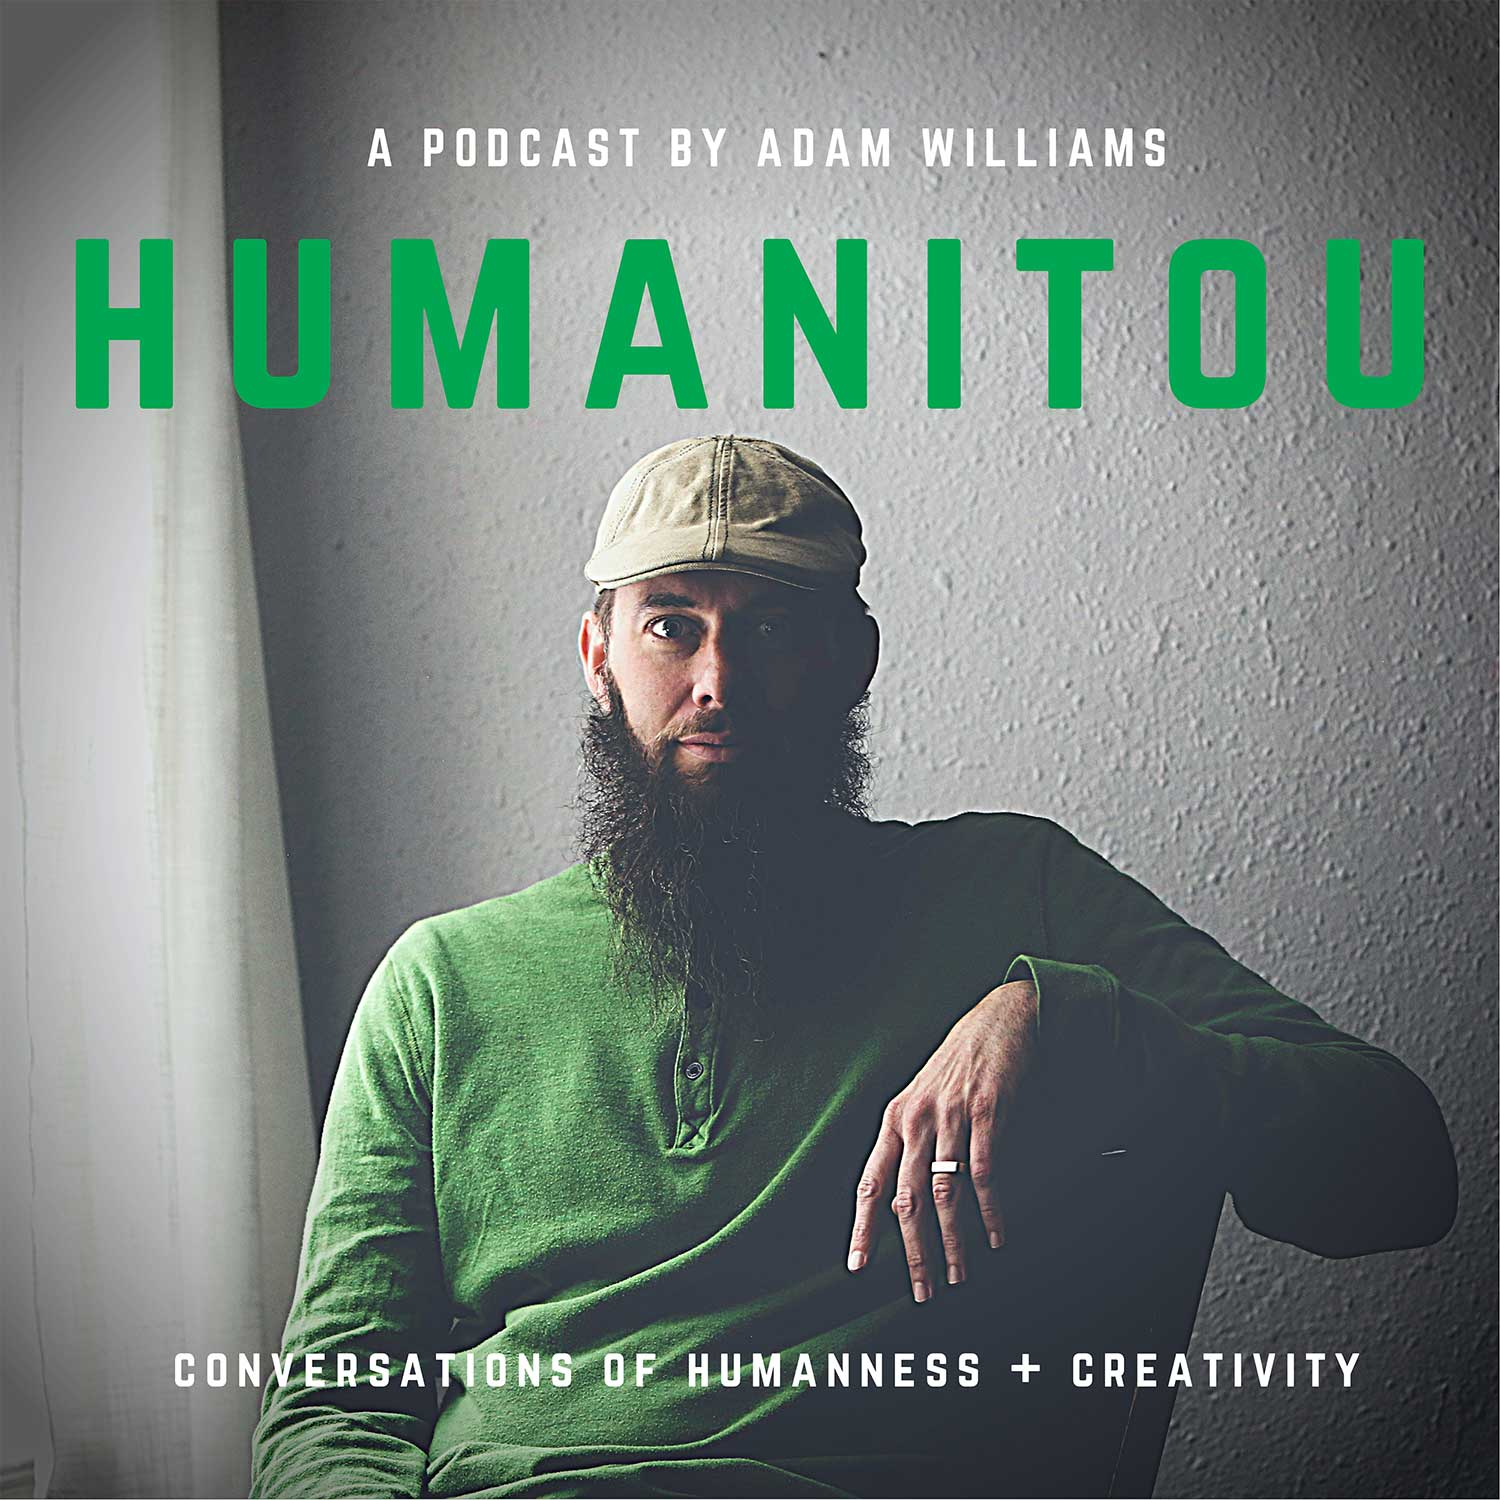 New Trailer: Humanitou Podcast